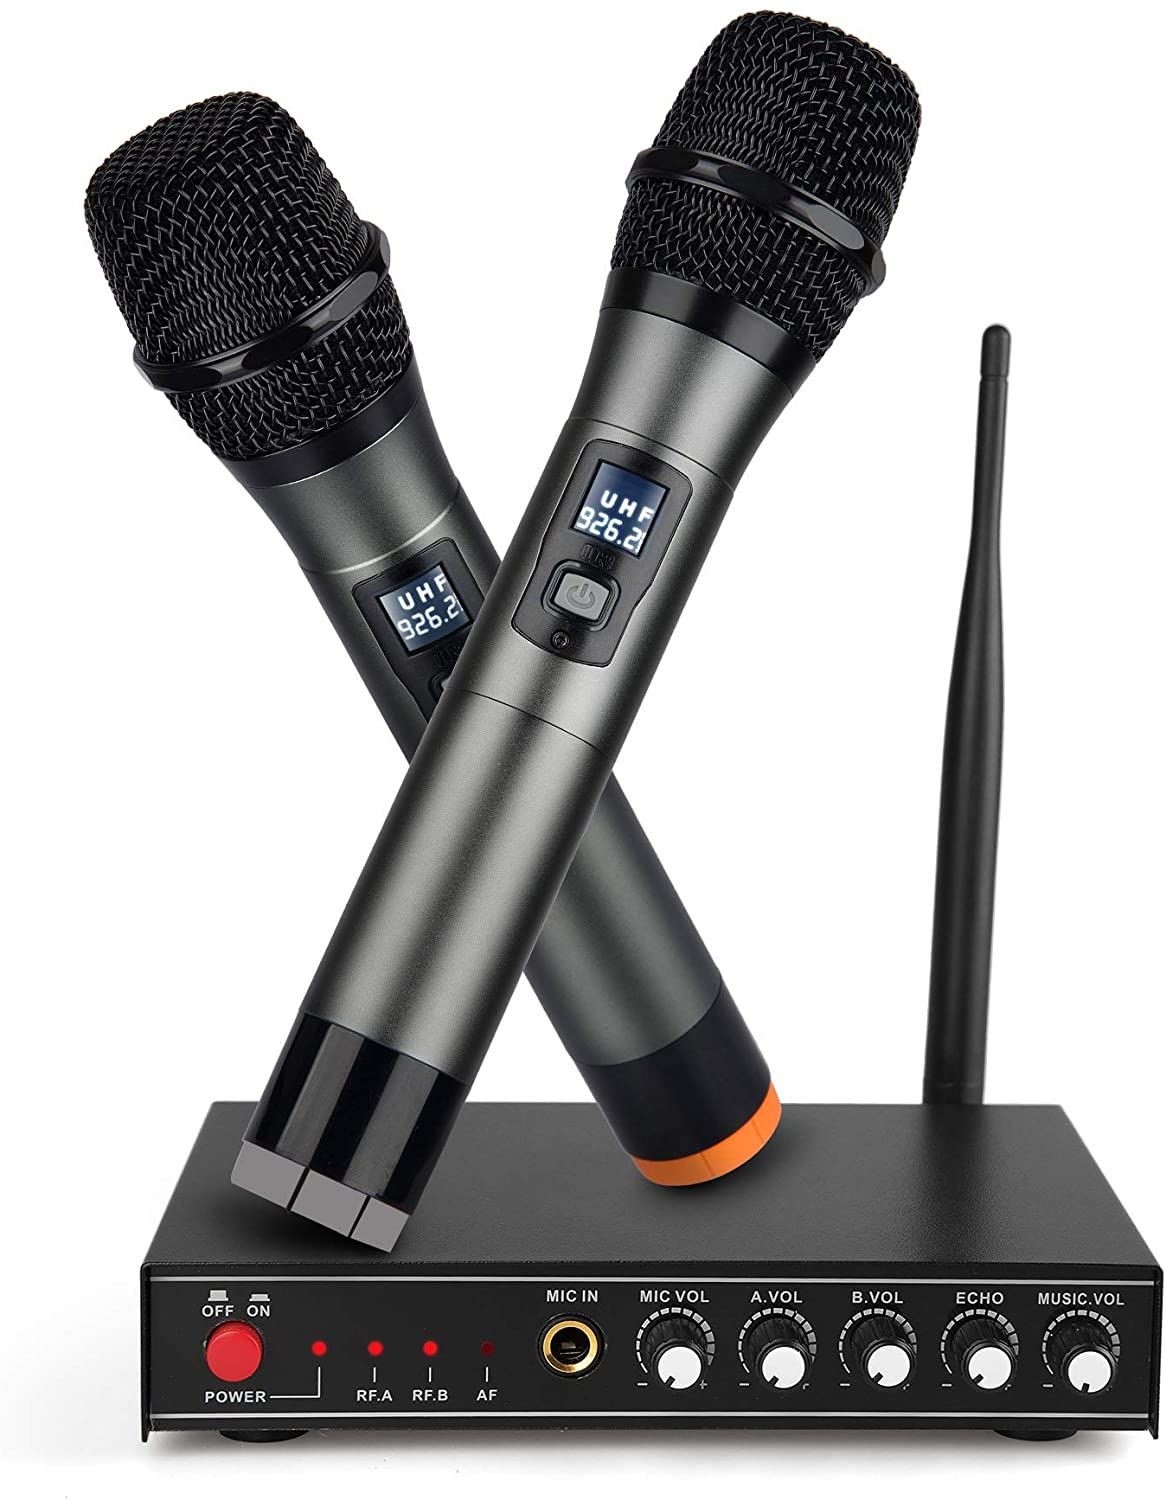 UHF Wireless Microphone System,Frunsi Dual Cordless Handheld Microphone Echo Control with Multiport Receiver, Support Long Range Wireless Signal for Home Karaoke, Singing, DJ, Churching, Presentation